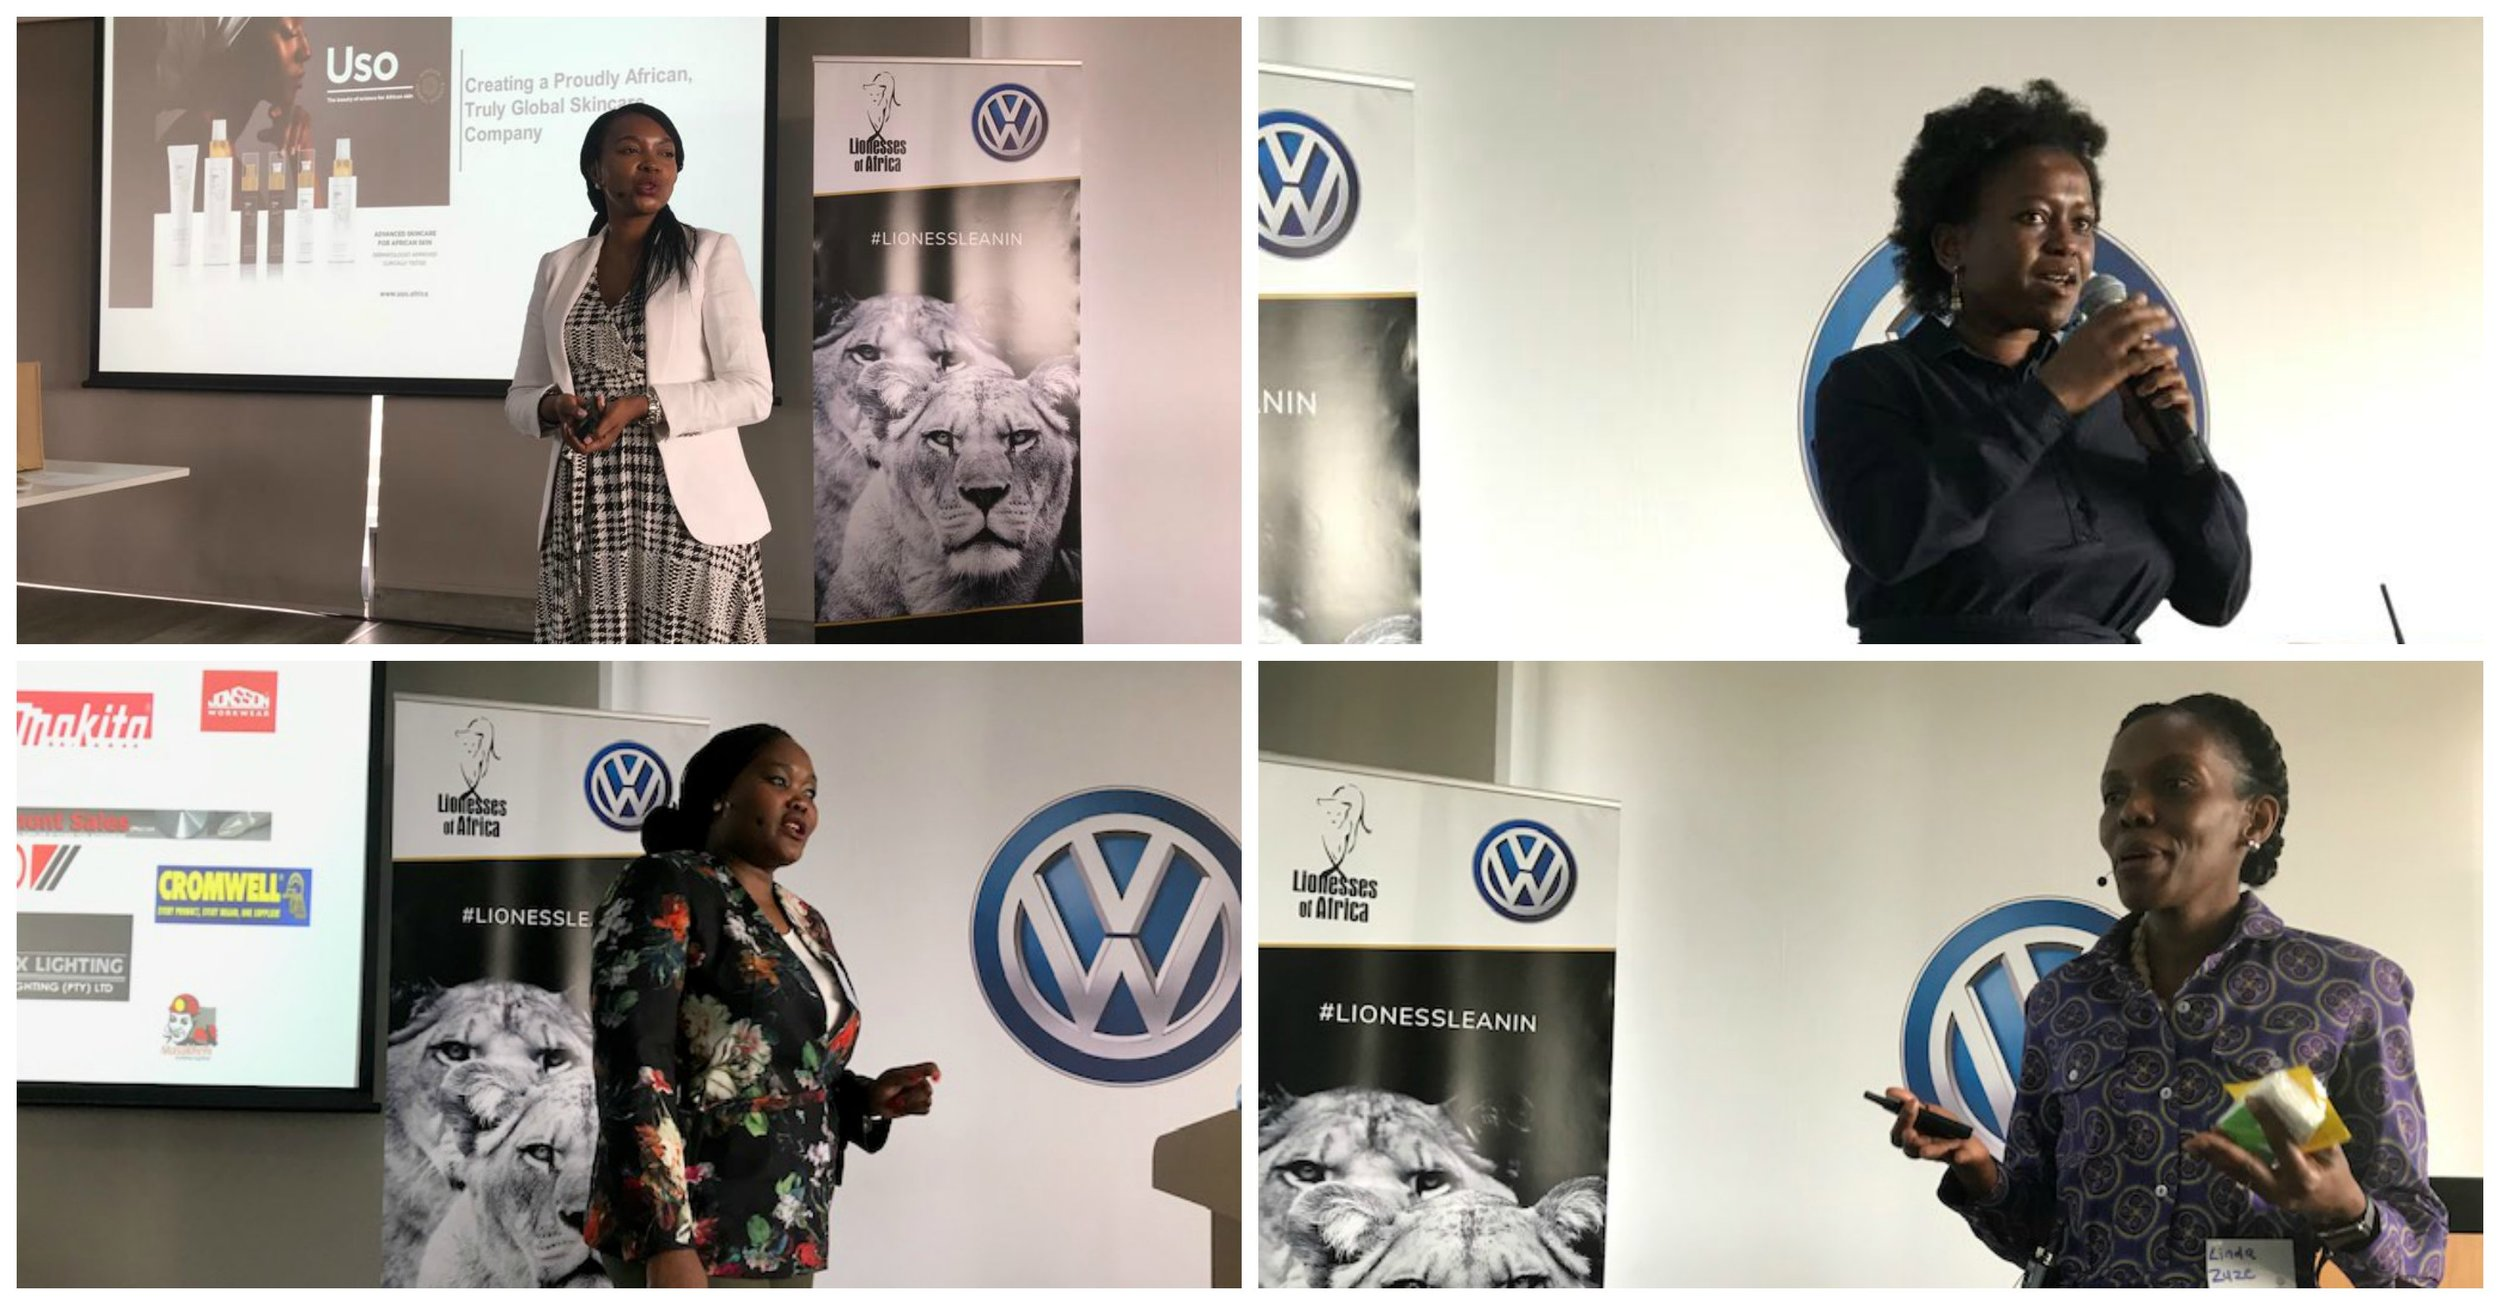 Top L-R: Dr Theo Mothoa, founder of African Dermal Science; Thandi Mbonwa, Corporate Sales Specialist at Volkswagen SA. Bottom L-R:Piliswa Schouten, founder of Masakheni Isizwe Mining and Construction; Linda Zuze, founder of Chimango Research